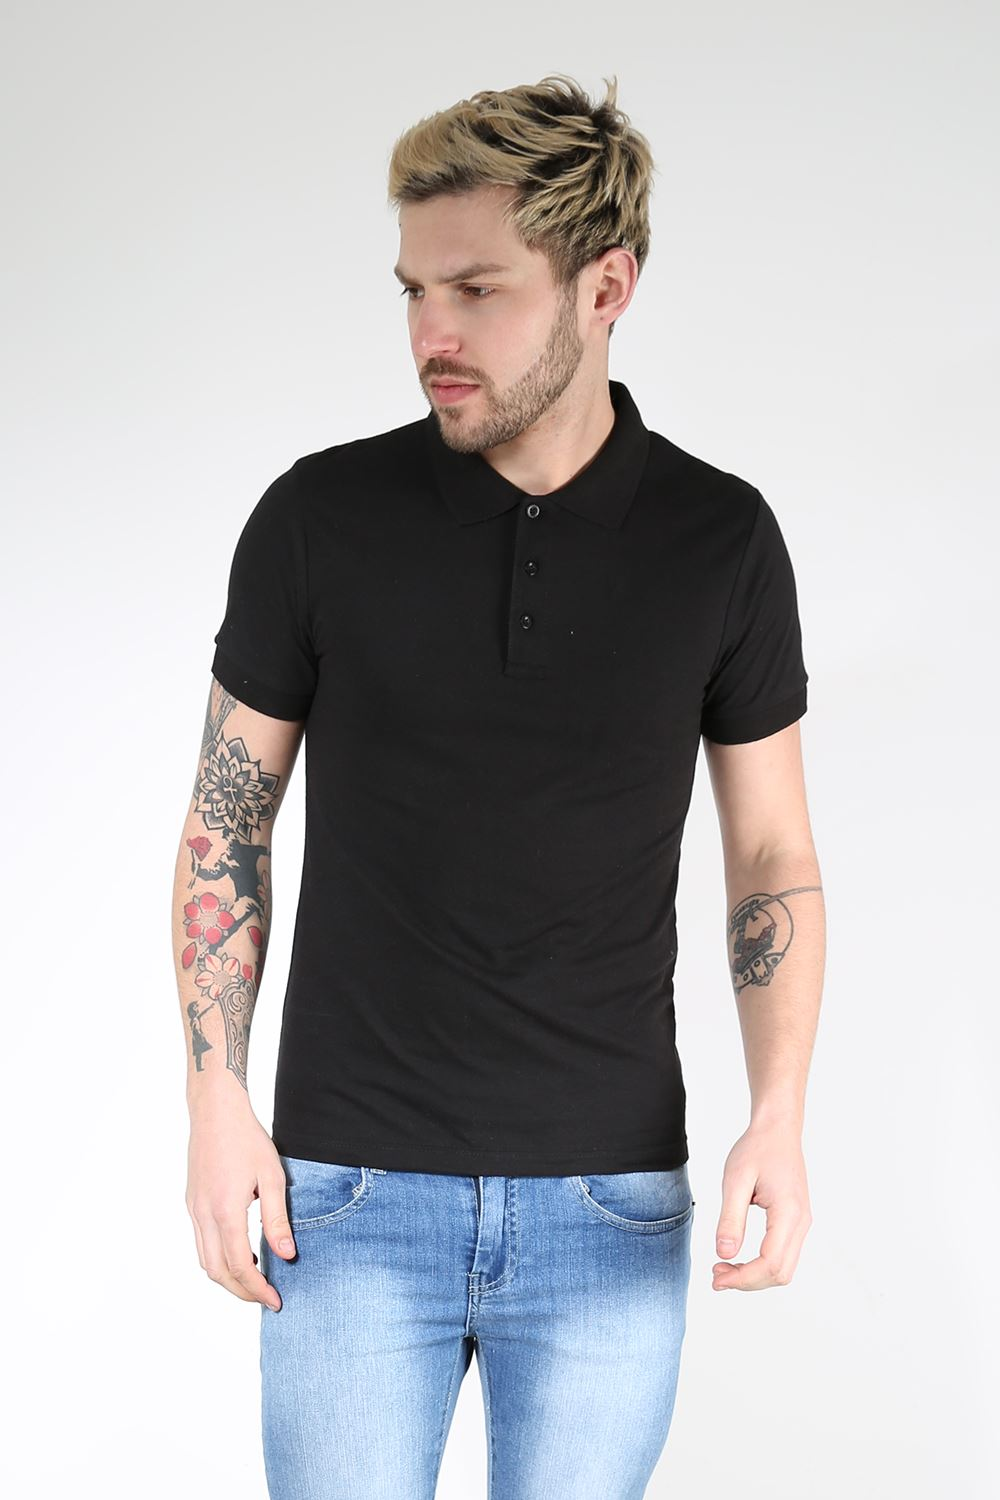 Mens Polo T Shirt Cuffed Short Sleeves Button Up Collar